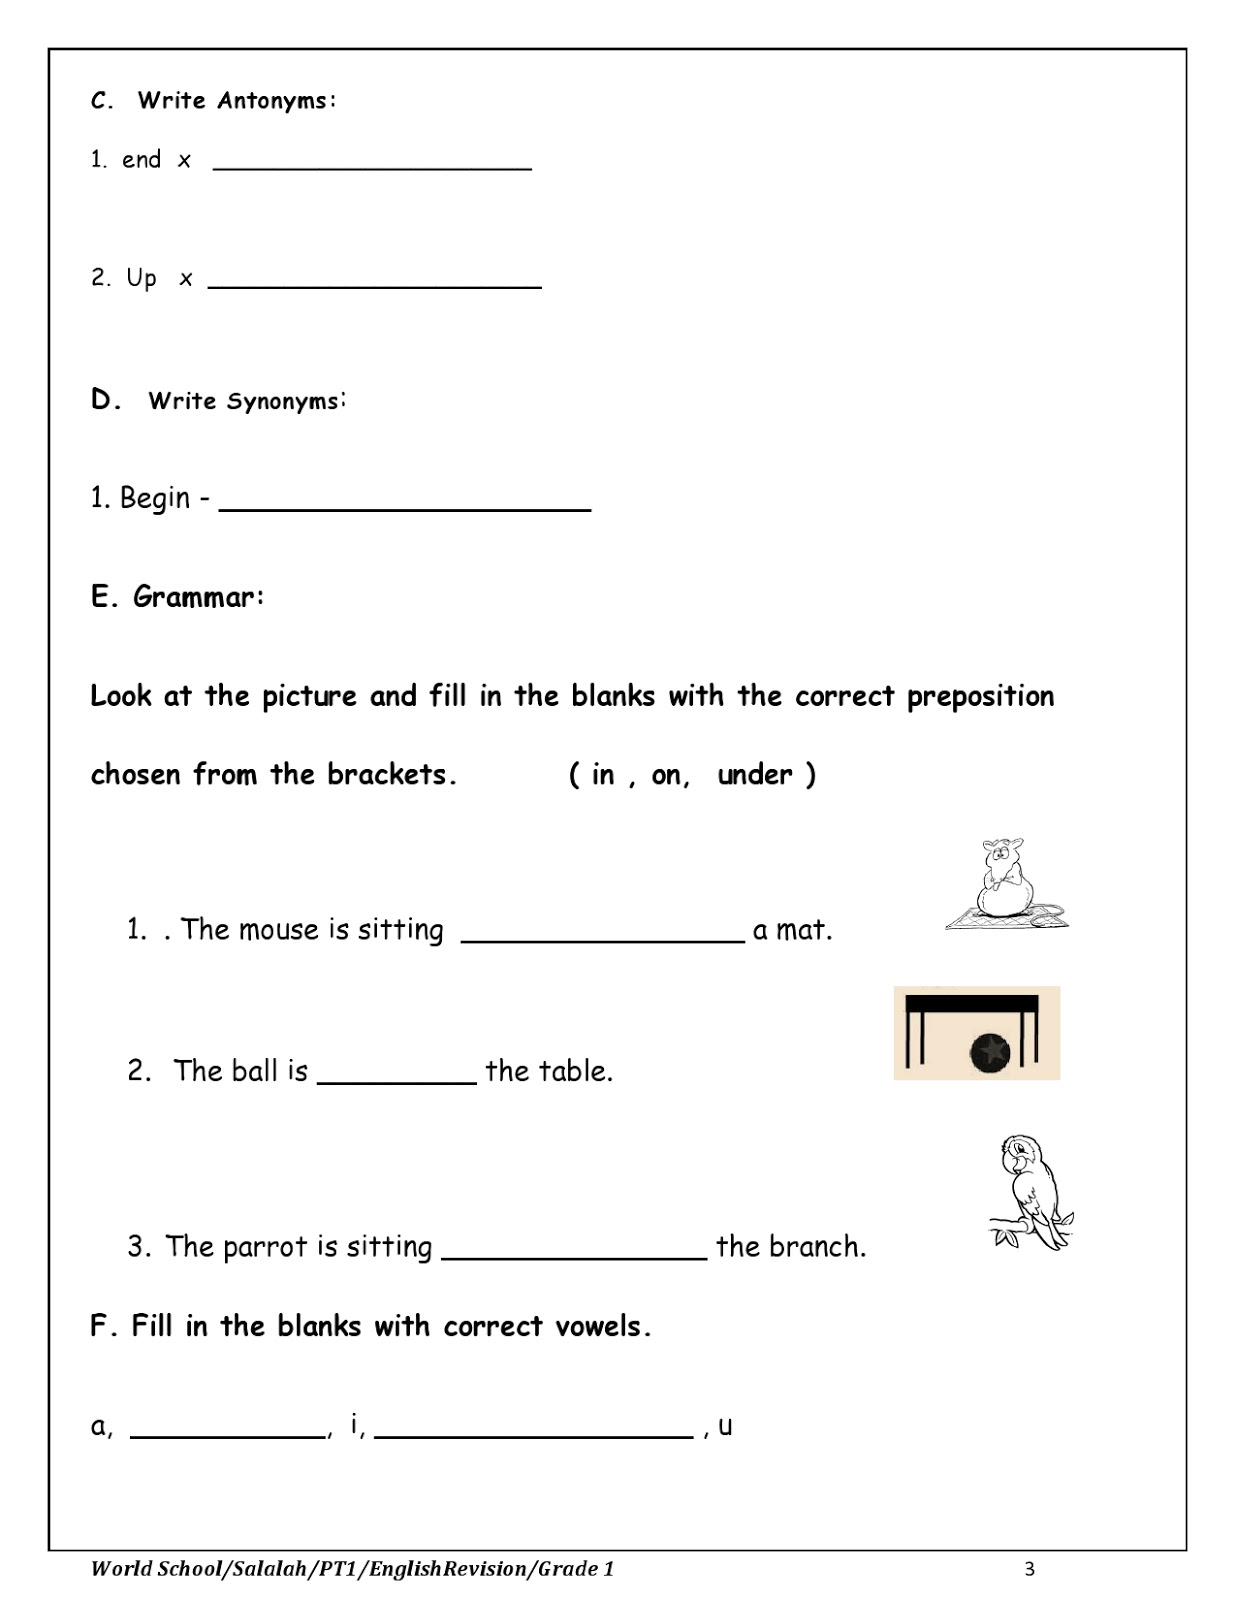 hight resolution of WORLD SCHOOL OMAN: Revision Worksheet for Grade 1 as on 03-10-2019